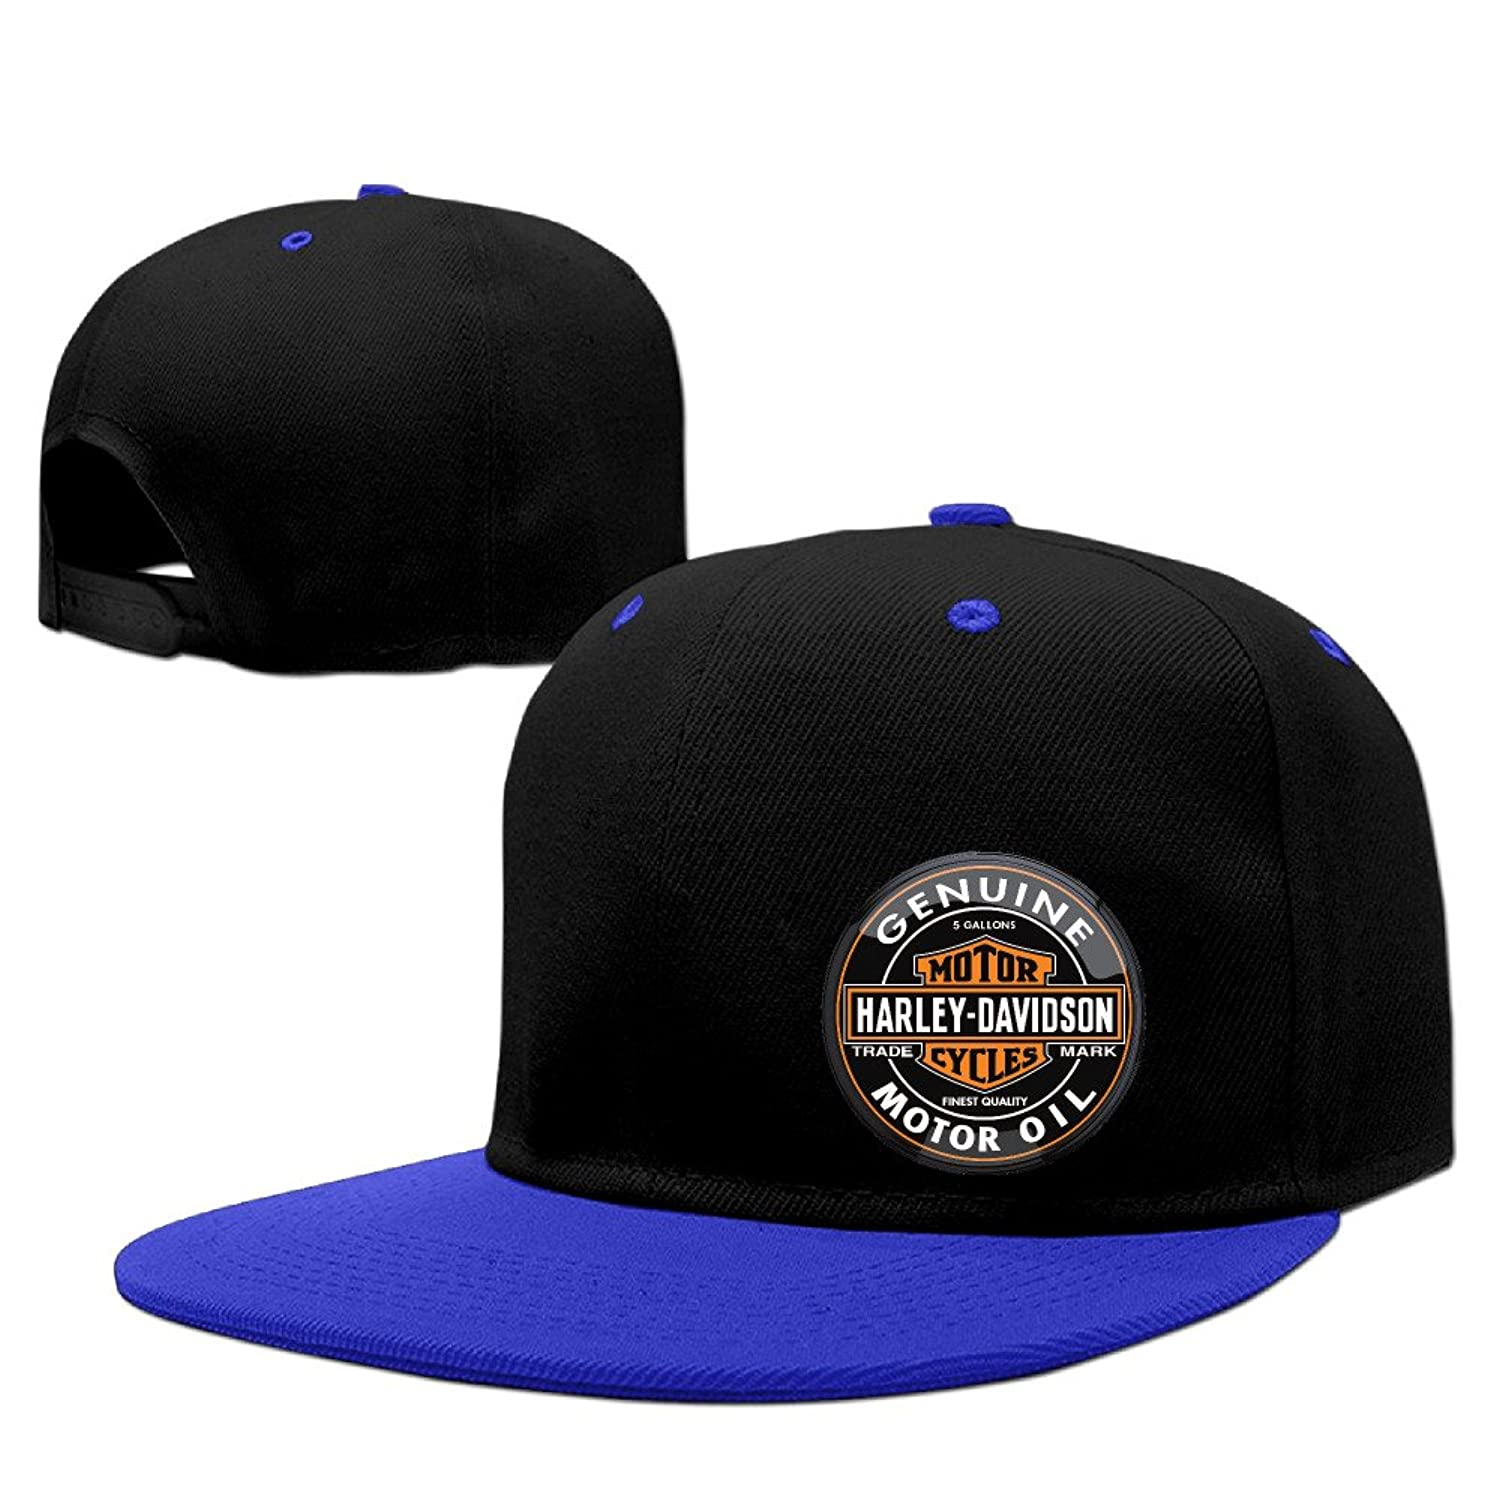 MYDT1 Unisex Harley Davidson Logo Adjustable Hip Hop Baseball Caps Hats